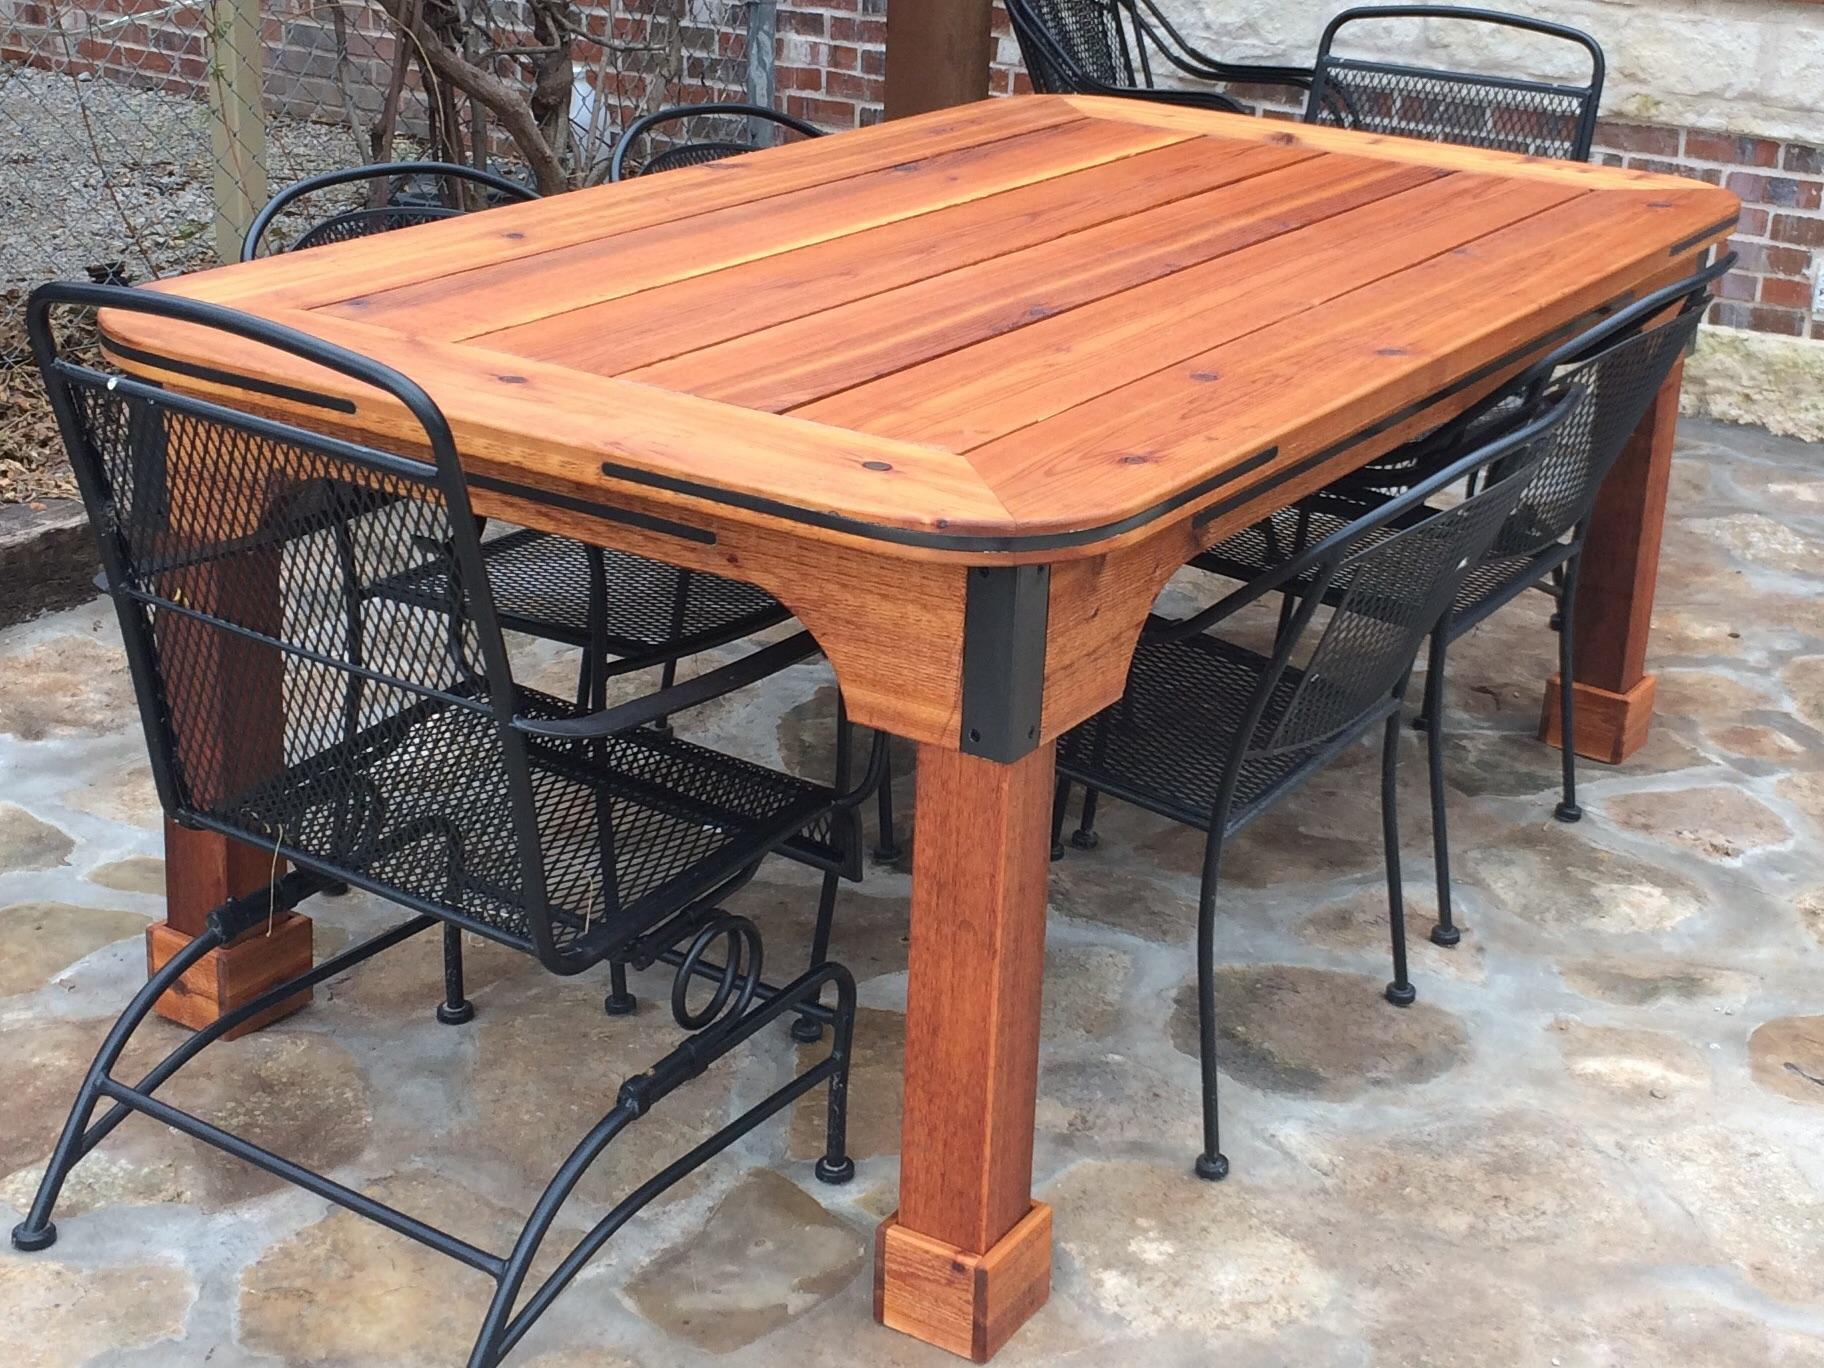 built this patio table out of cedar and